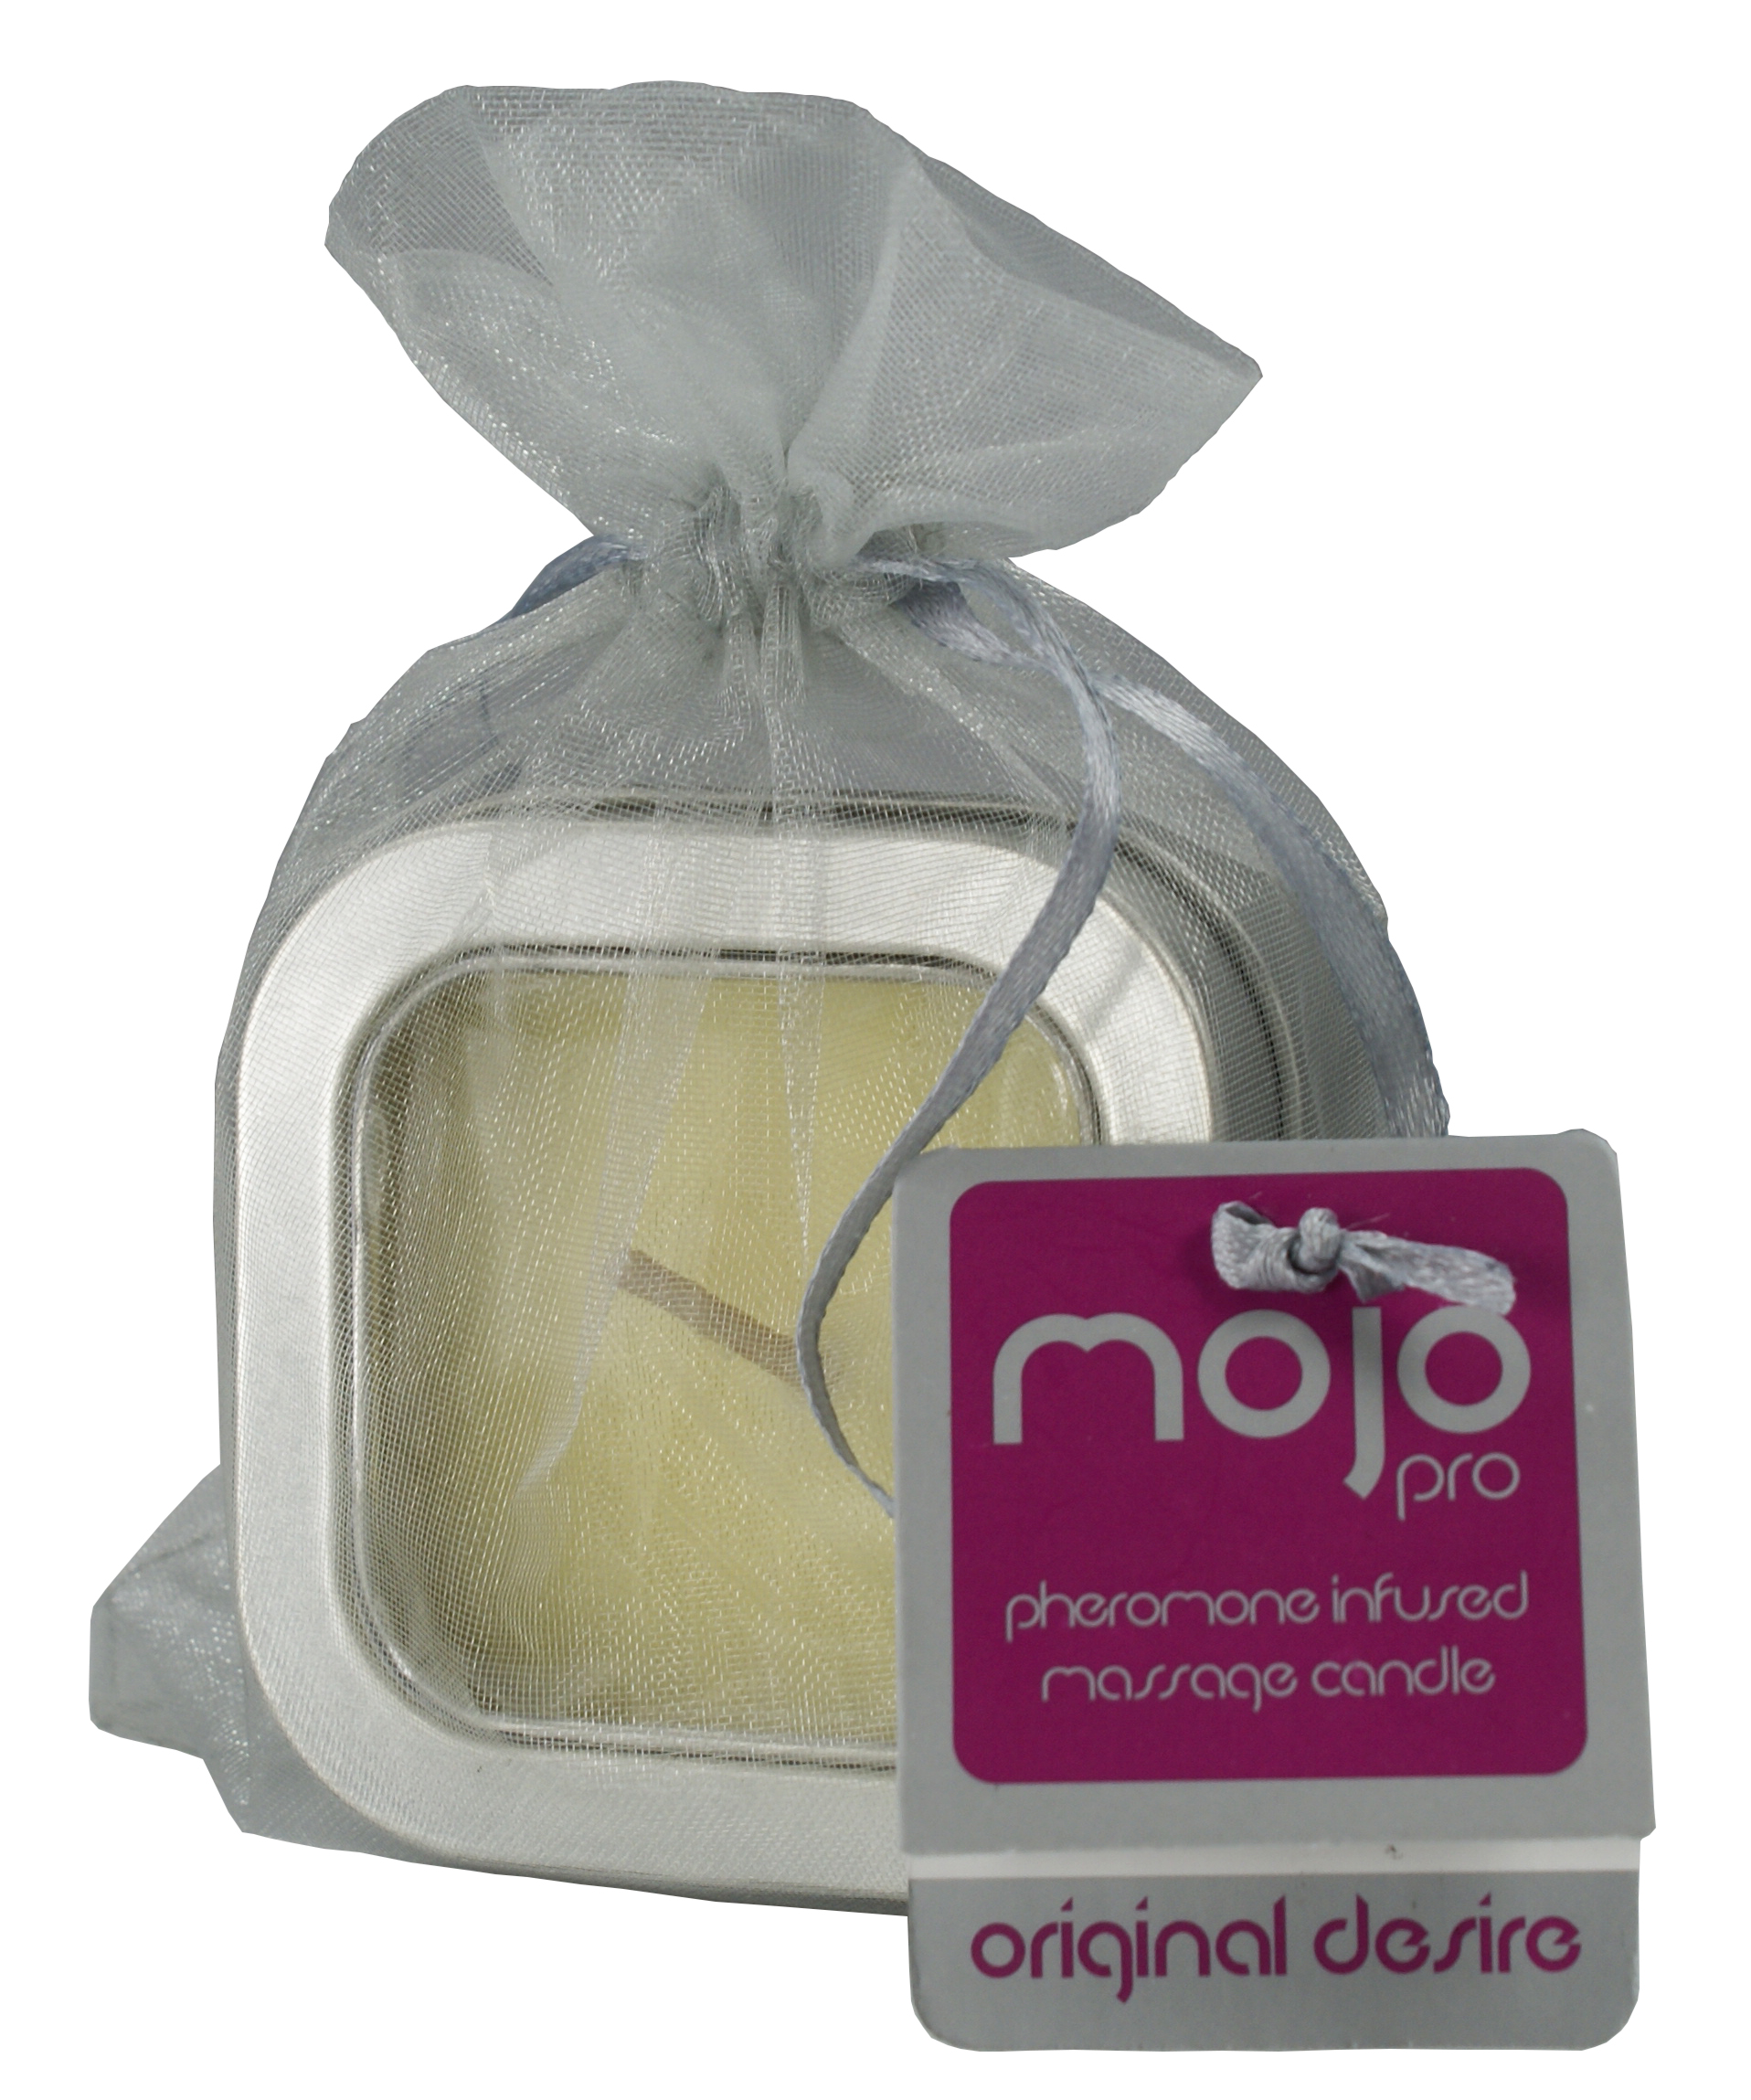 Love Scent coupon: Mojo Pro Pheromone Infused Massage Candle - Original Desire